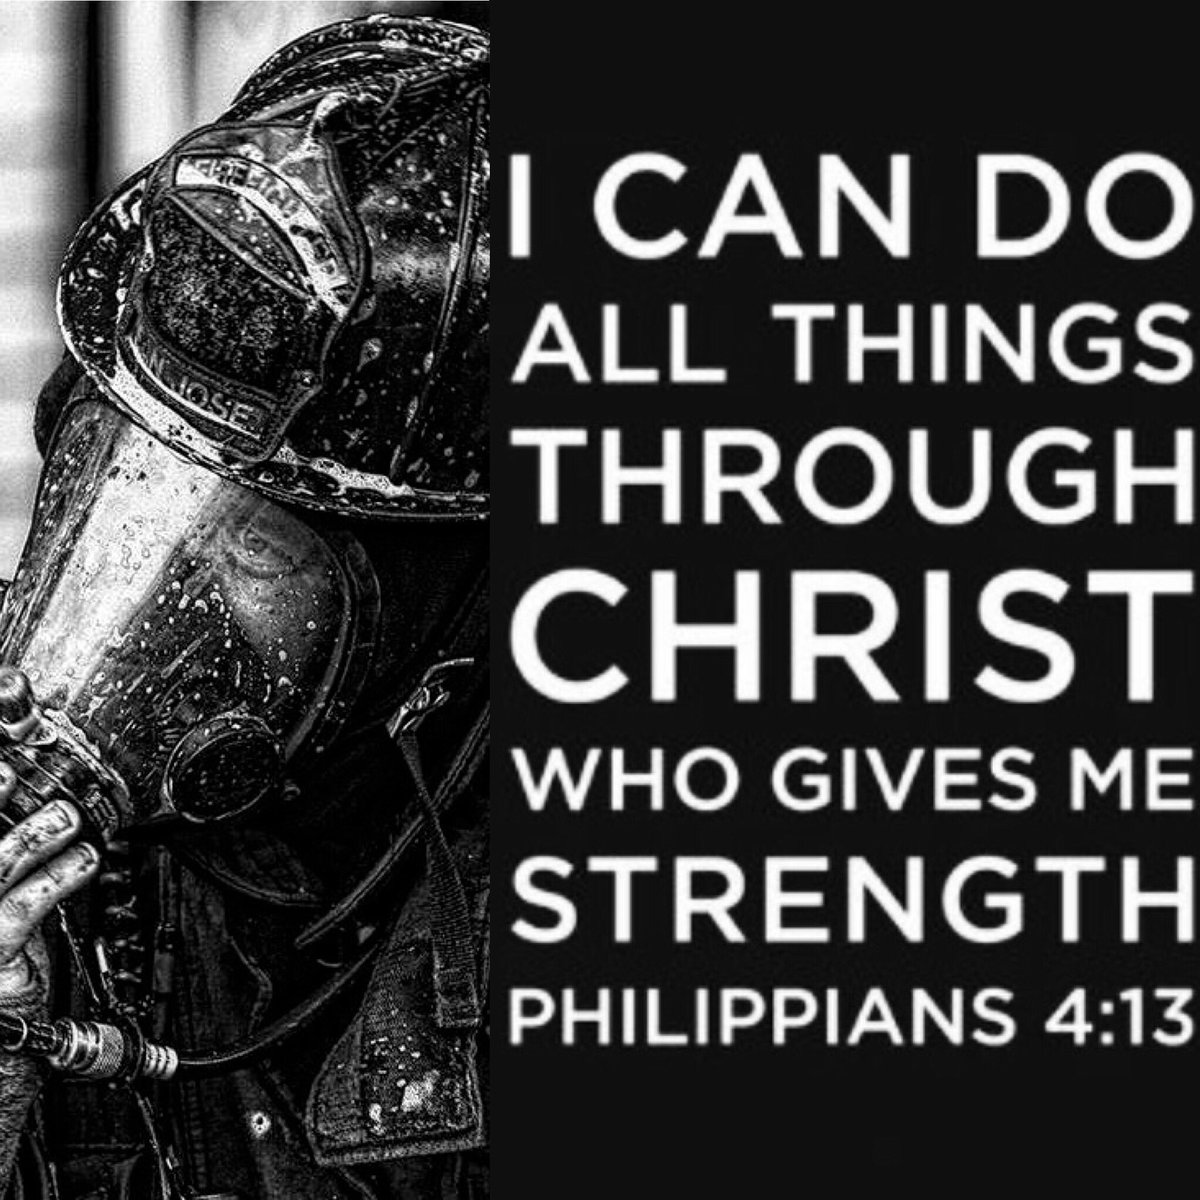 FIT TO FIGHT FIRE On Twitter I Can Do All Things Through Christ Who Gives Me Strength Philippians 413